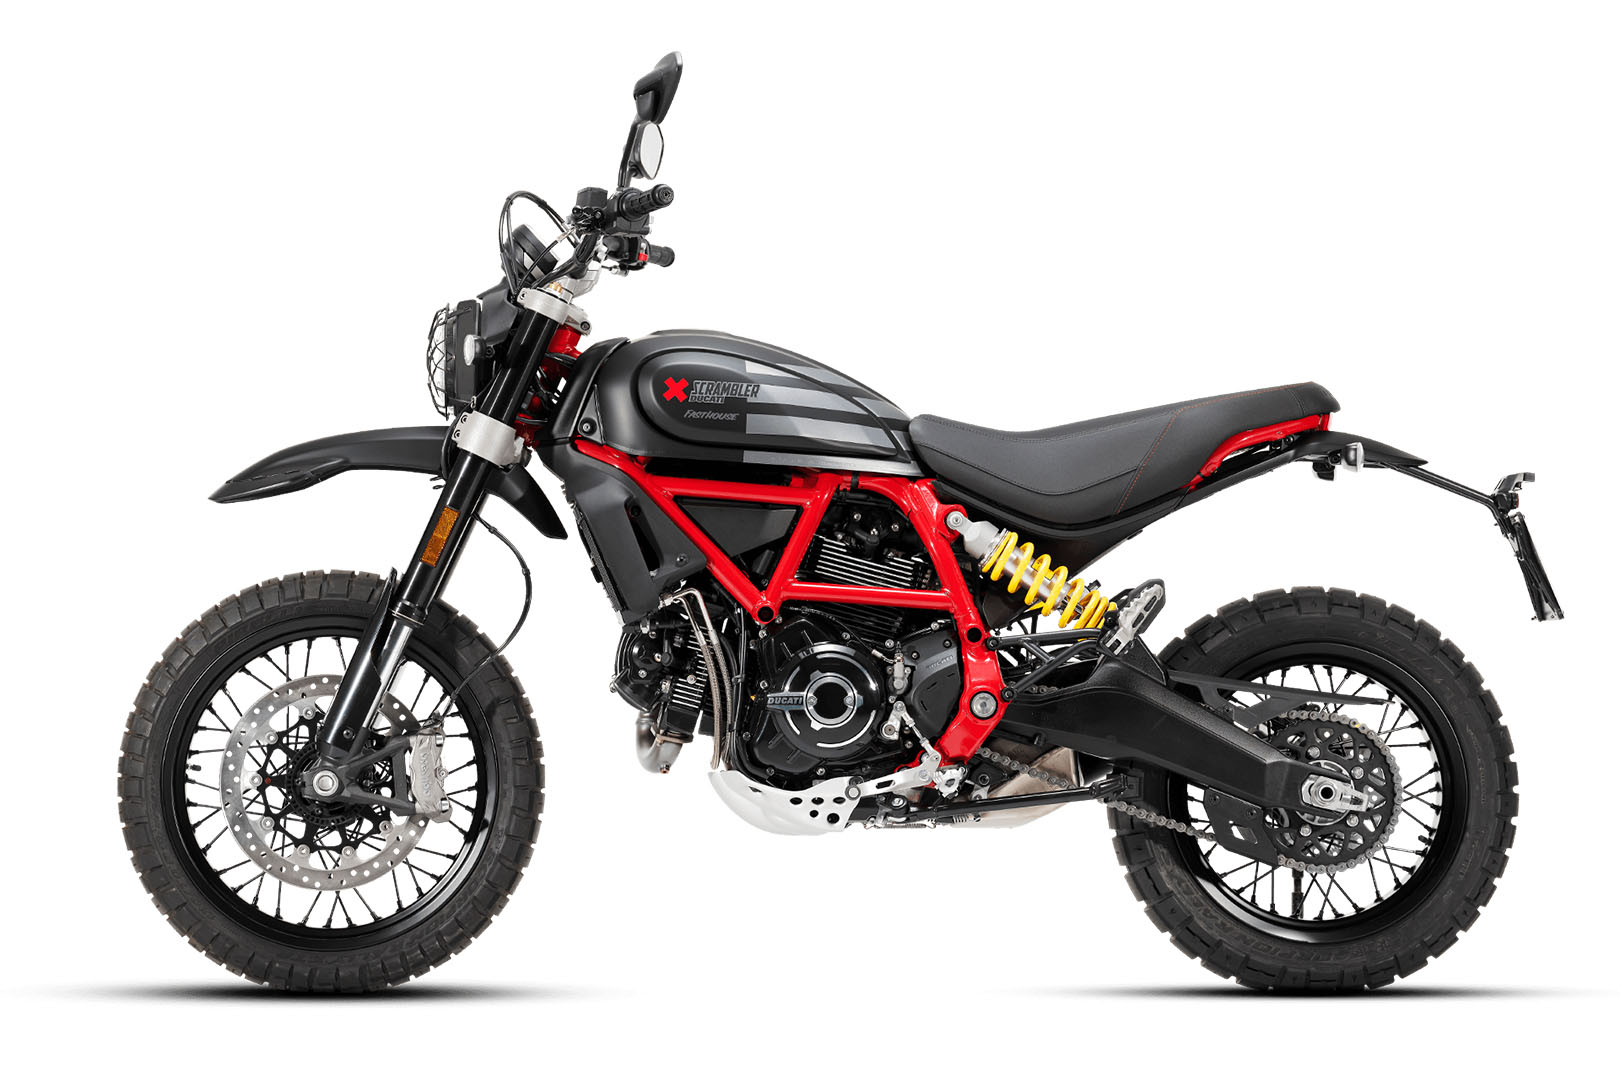 2021 Ducati Scrambler Desert Sled Fasthouse LE in Philadelphia, Pennsylvania - Photo 3